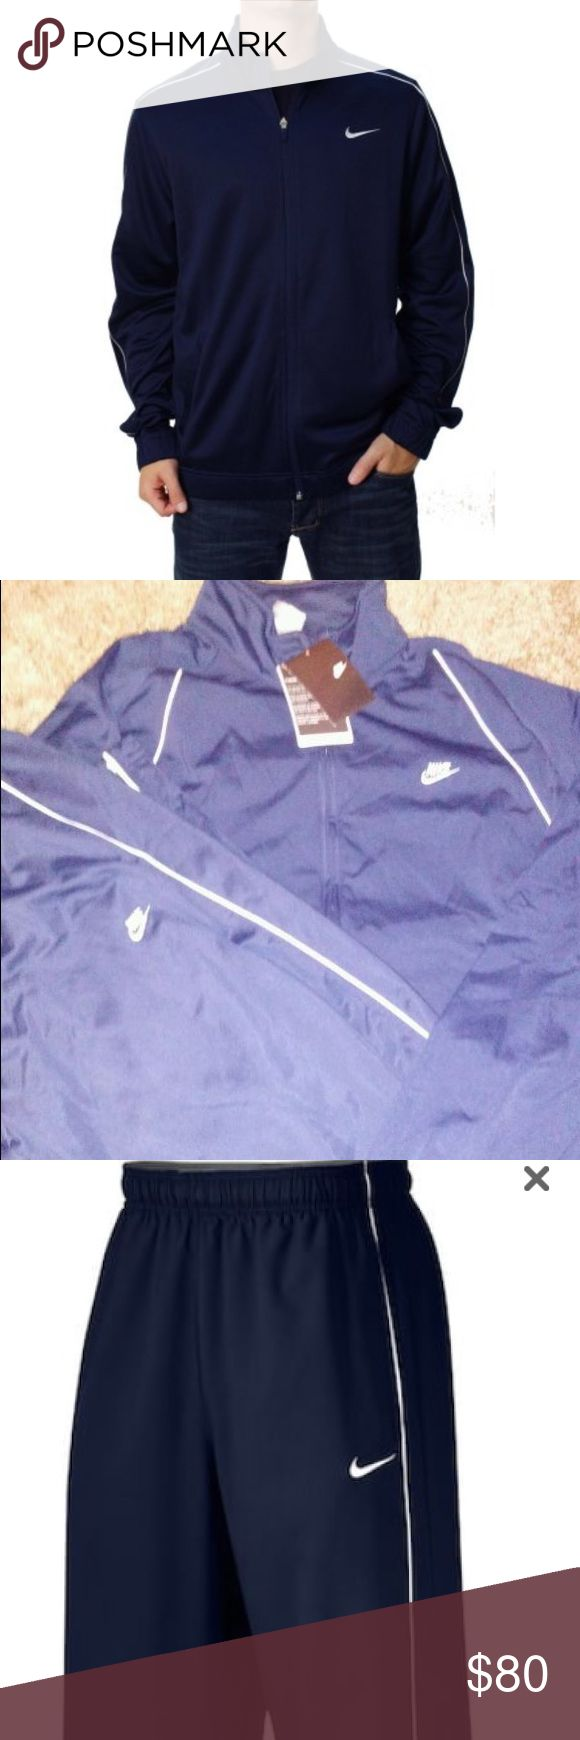 Dark Blue and white Mens Nike Sweatsuit. BNWT The Nike Team Woven Sweatsuit  is the perfect fit, with contrast color piping on side panel seam, makes for a great look. The body is Dri-FIT®, 160g 100% polyester plain twill. While the mesh is Dri-FIT®, 82g 100% Polyester (100% recycled) warp knit. Features an Everquick Dry Moisture Management Finish to wick away sweat in order to keep you cool and dry when things heat up. Side seam pockets and leg zips for comfort. Embroidered Swoosh design…